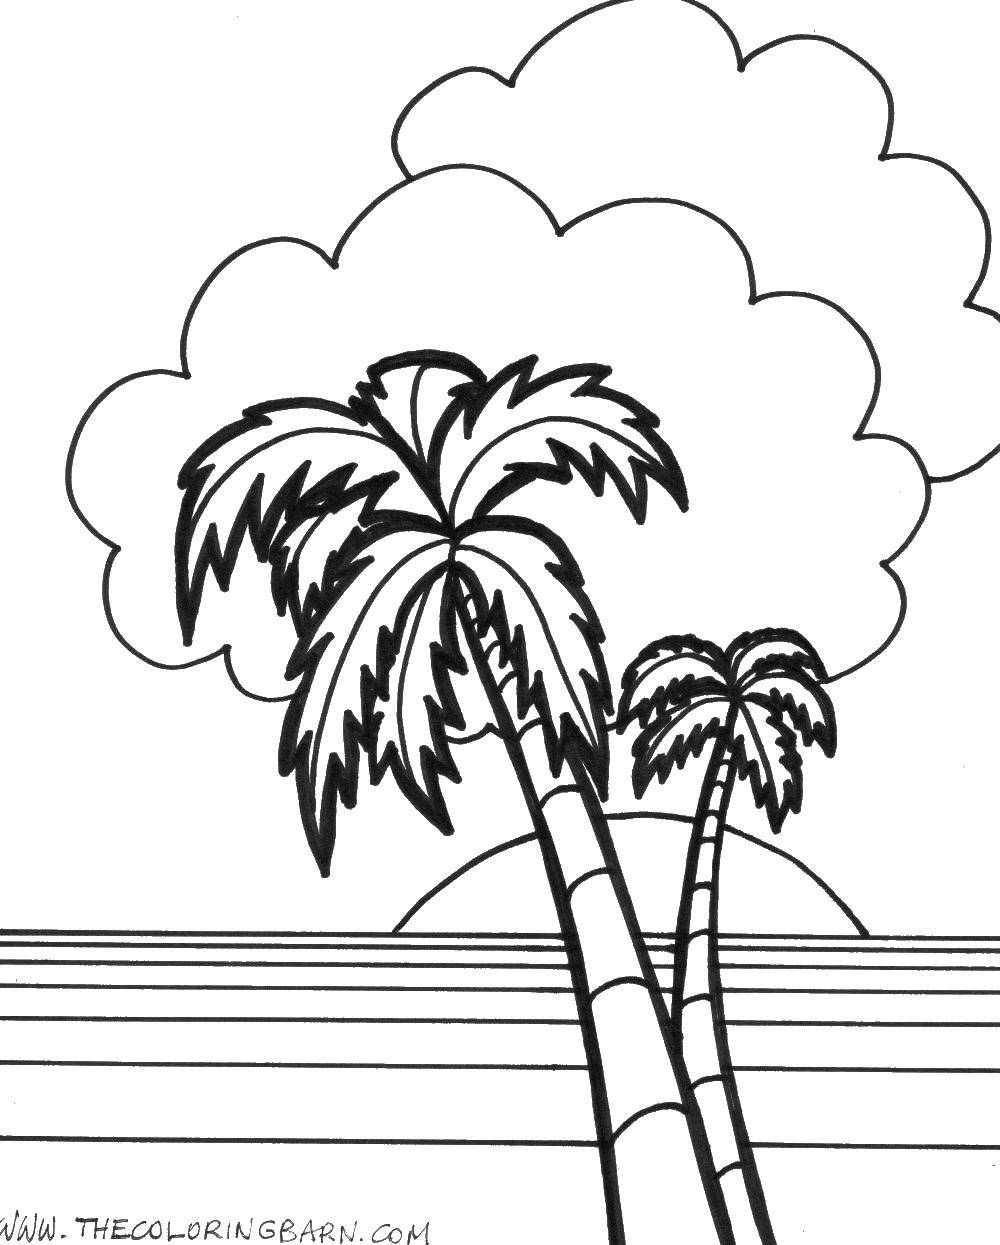 Coloring Sunset, palm trees Download ,Sun, rays, joy,.  Print